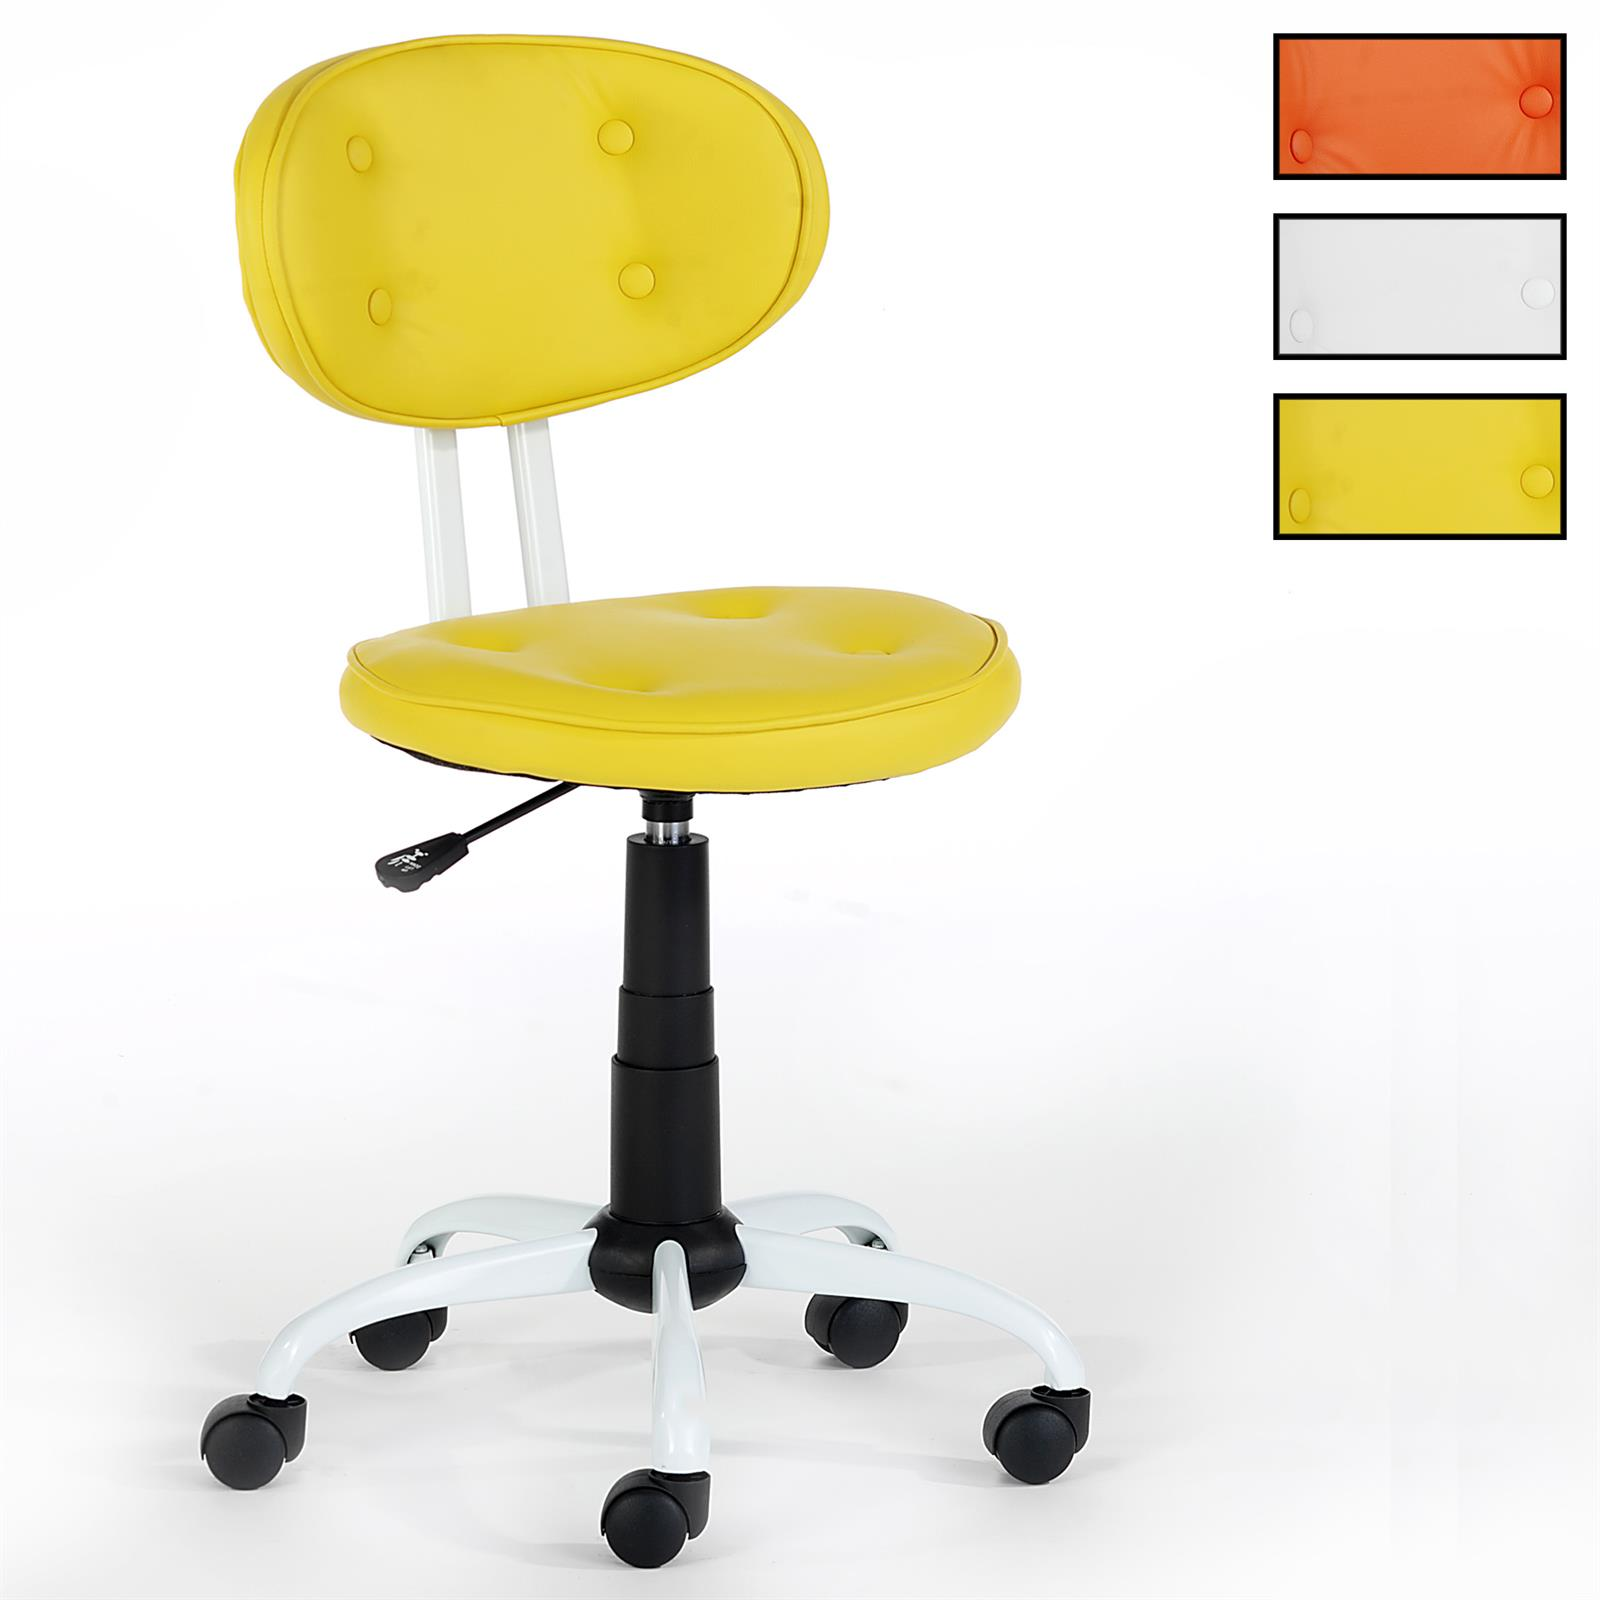 fauteuil de bureau pour enfant lenie 3 coloris disponibles mobil meubles. Black Bedroom Furniture Sets. Home Design Ideas